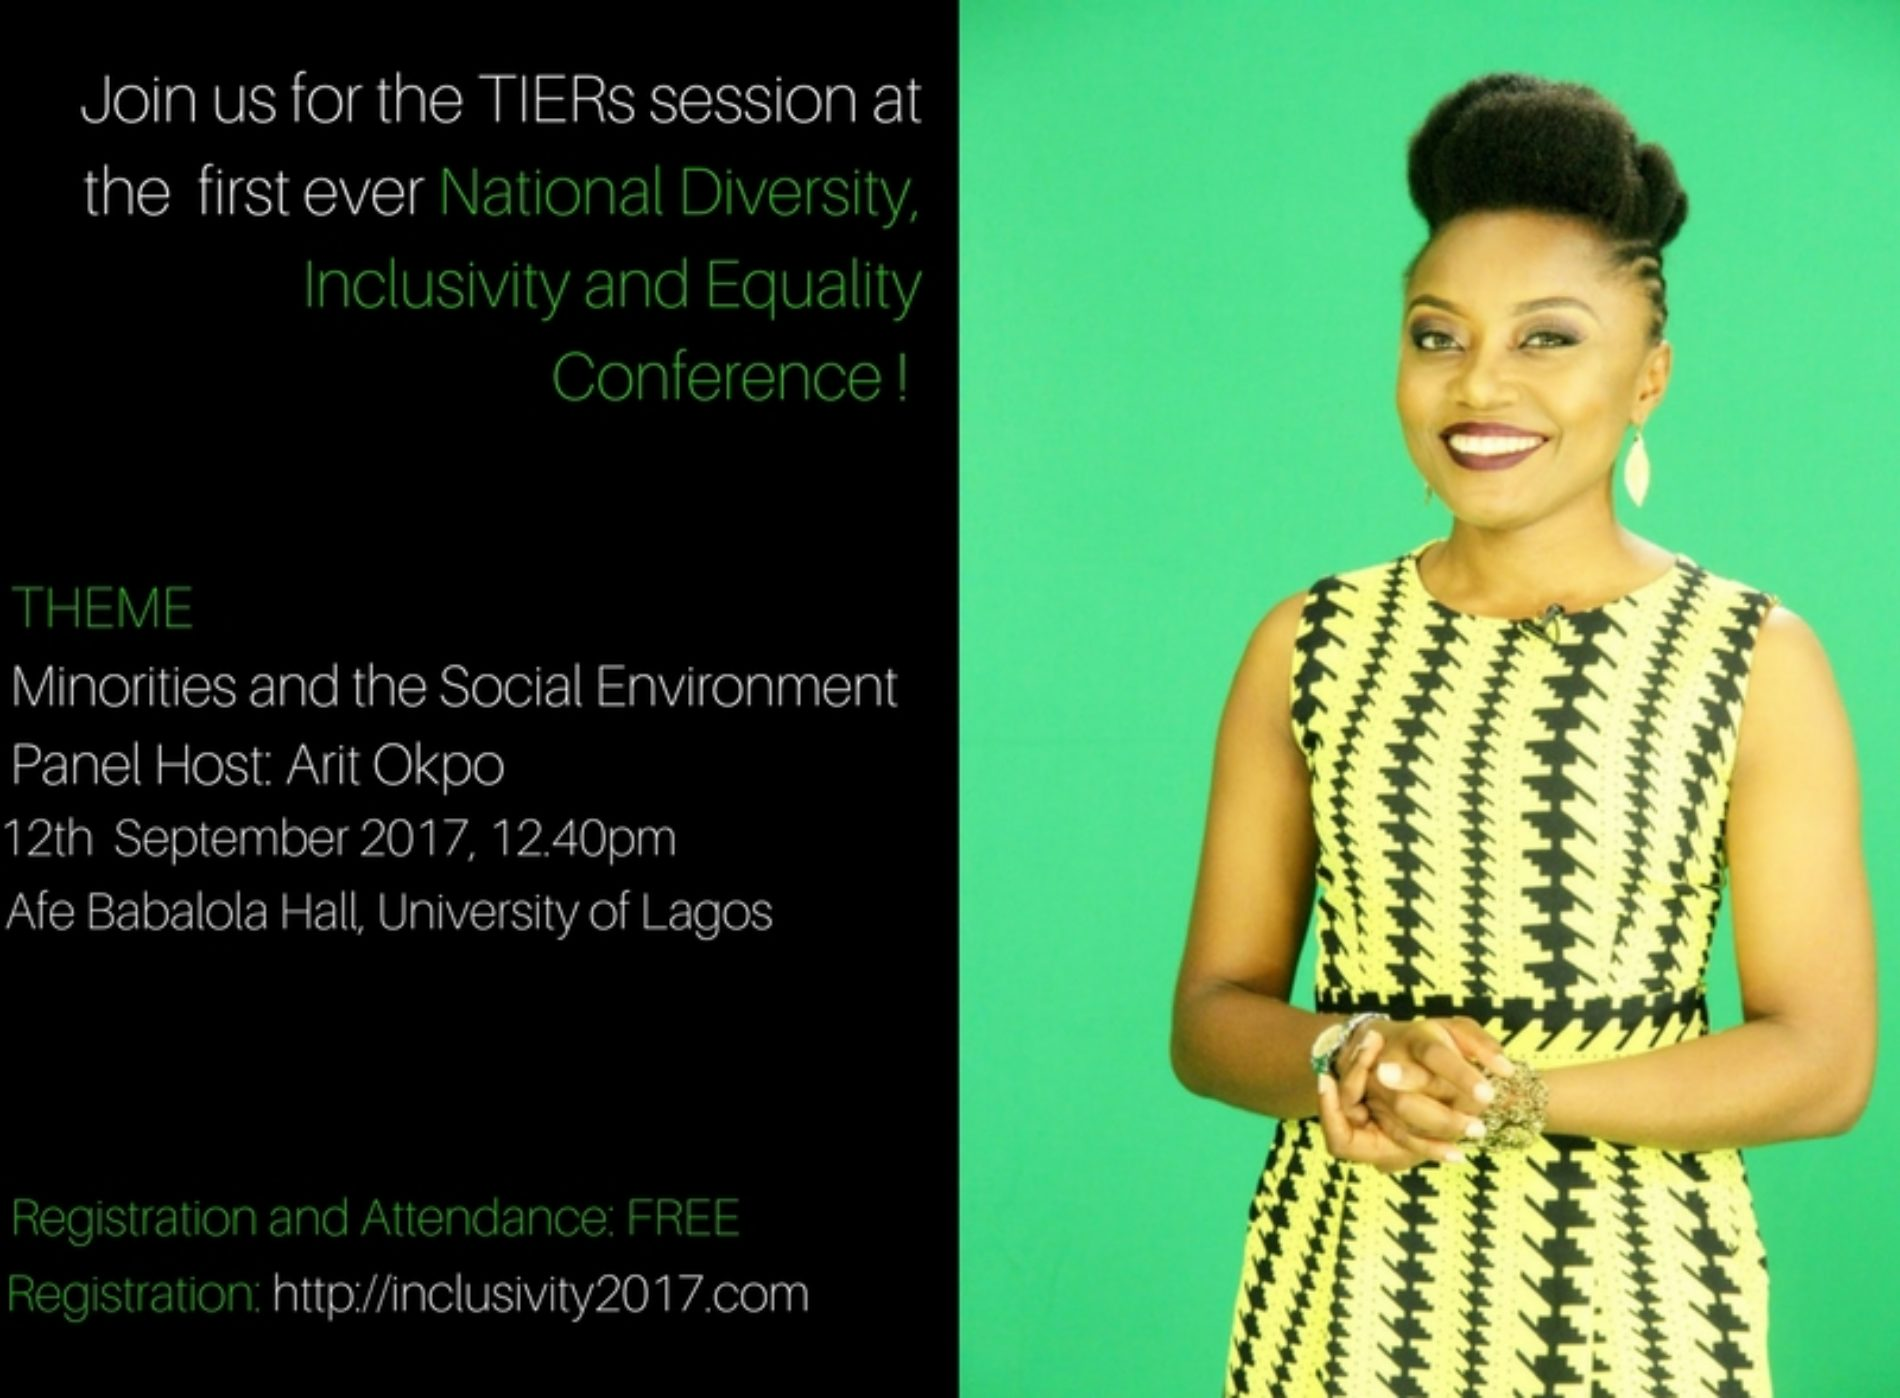 Update on the TIERs-partnered national conference on Diversity, Inclusivity and Equality